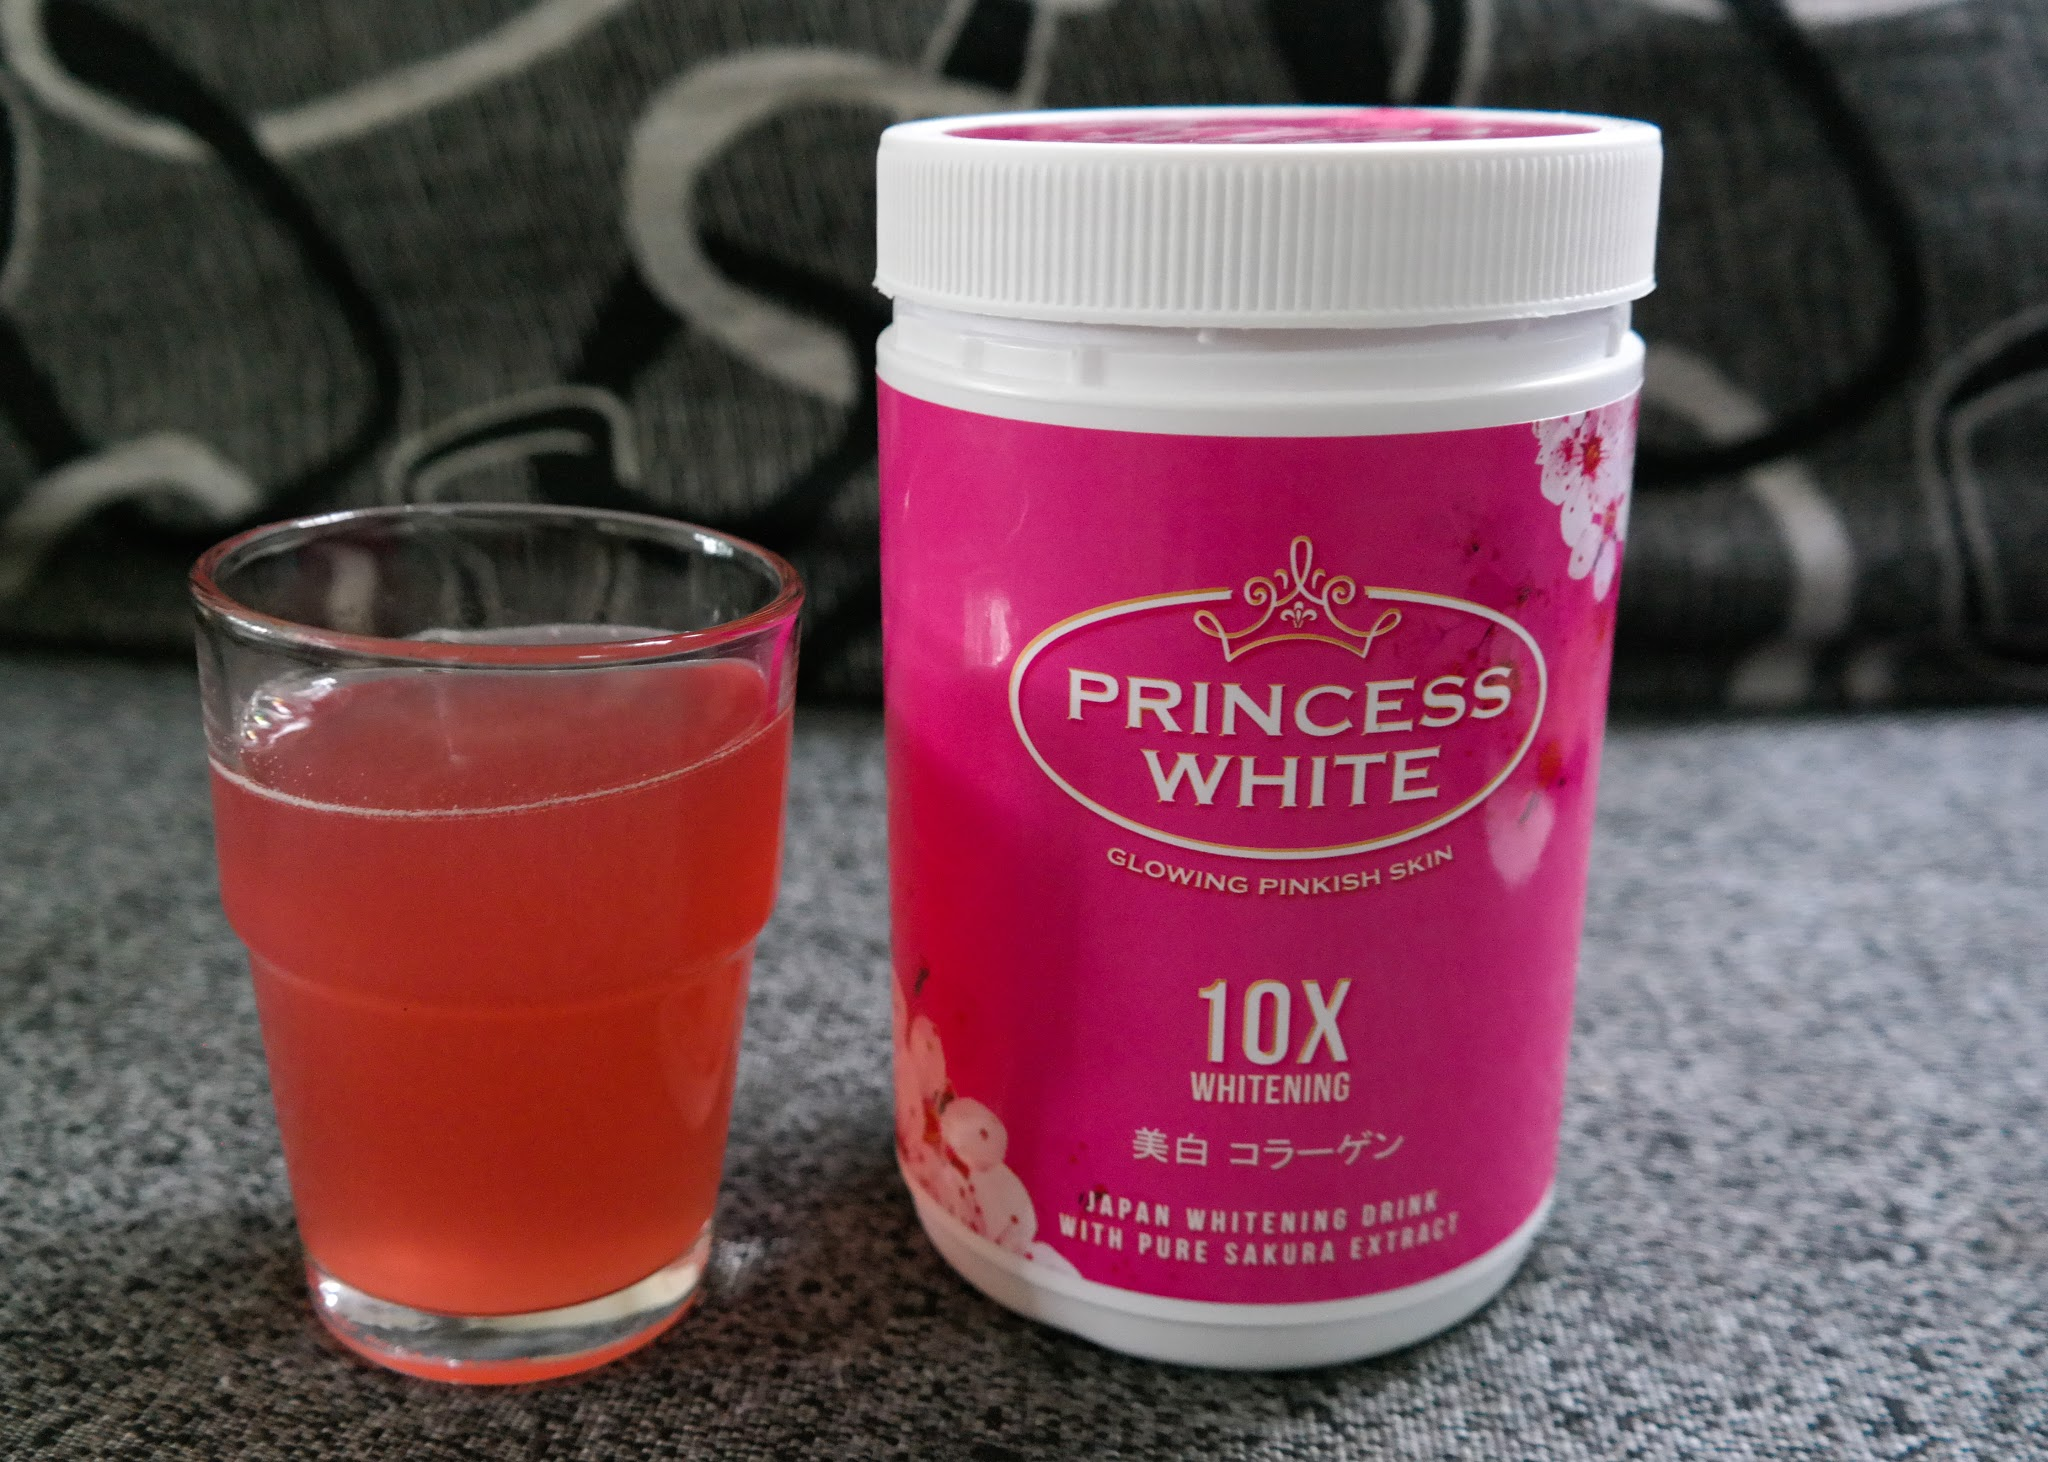 Get the Glowing Pinkish Skin with Princess White, Princess White Whitening Drinks,testimoni Princess White Drinks,acai berry drink, whitening drink, malaysia most seller whitening drinks, malaysia top selling whitening drinks, supplement facts,